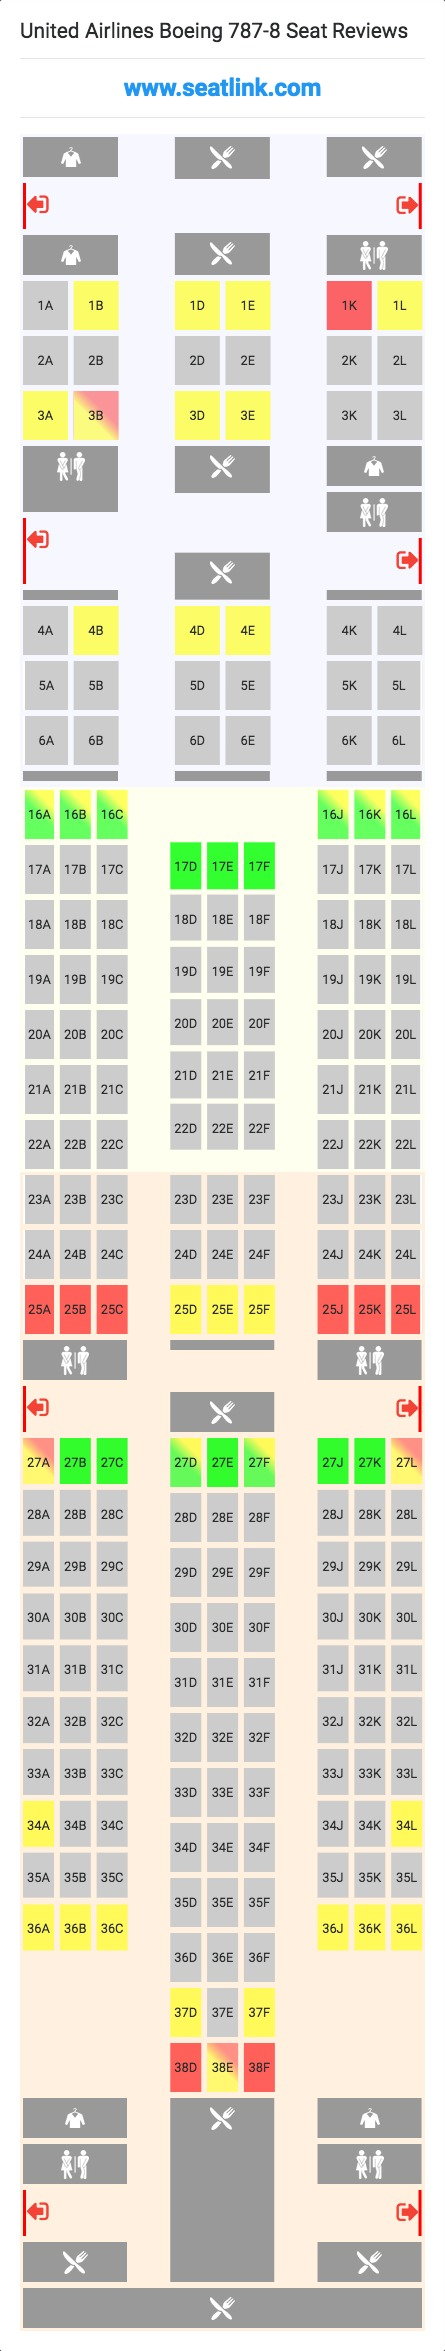 United Airlines Boeing 787-8 Seating Chart - Updated